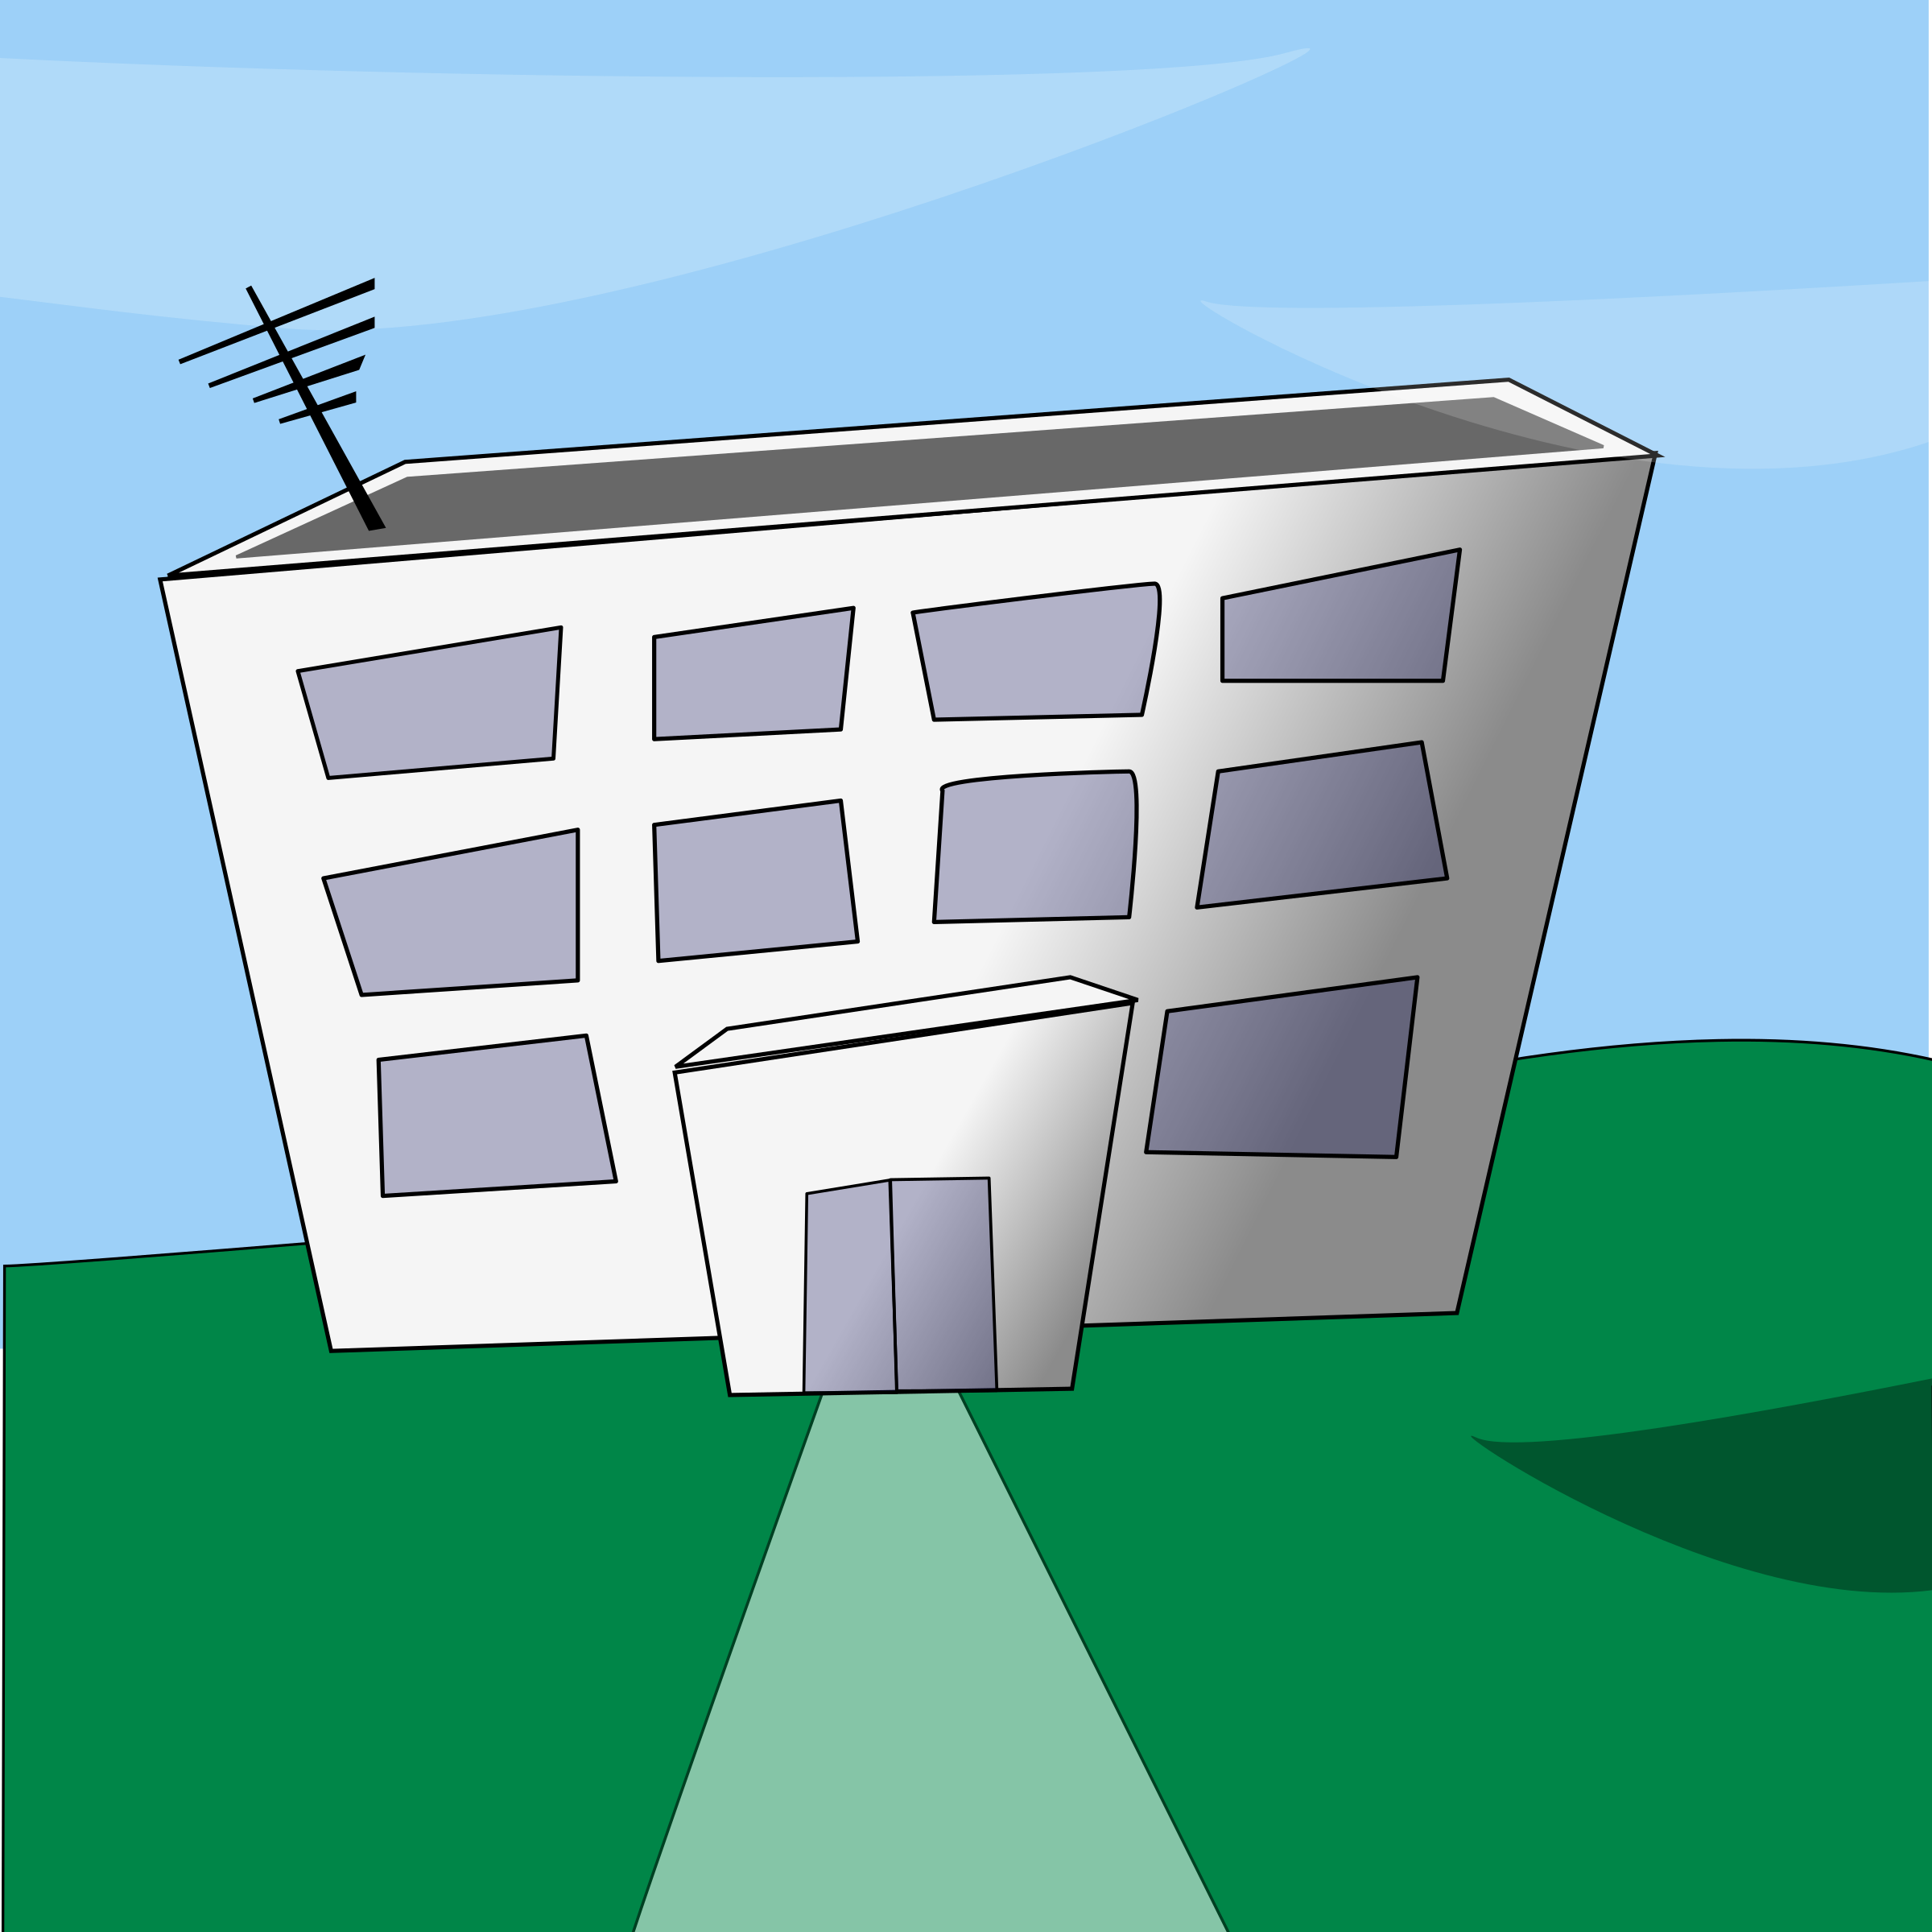 Cartoon building by bogdanco